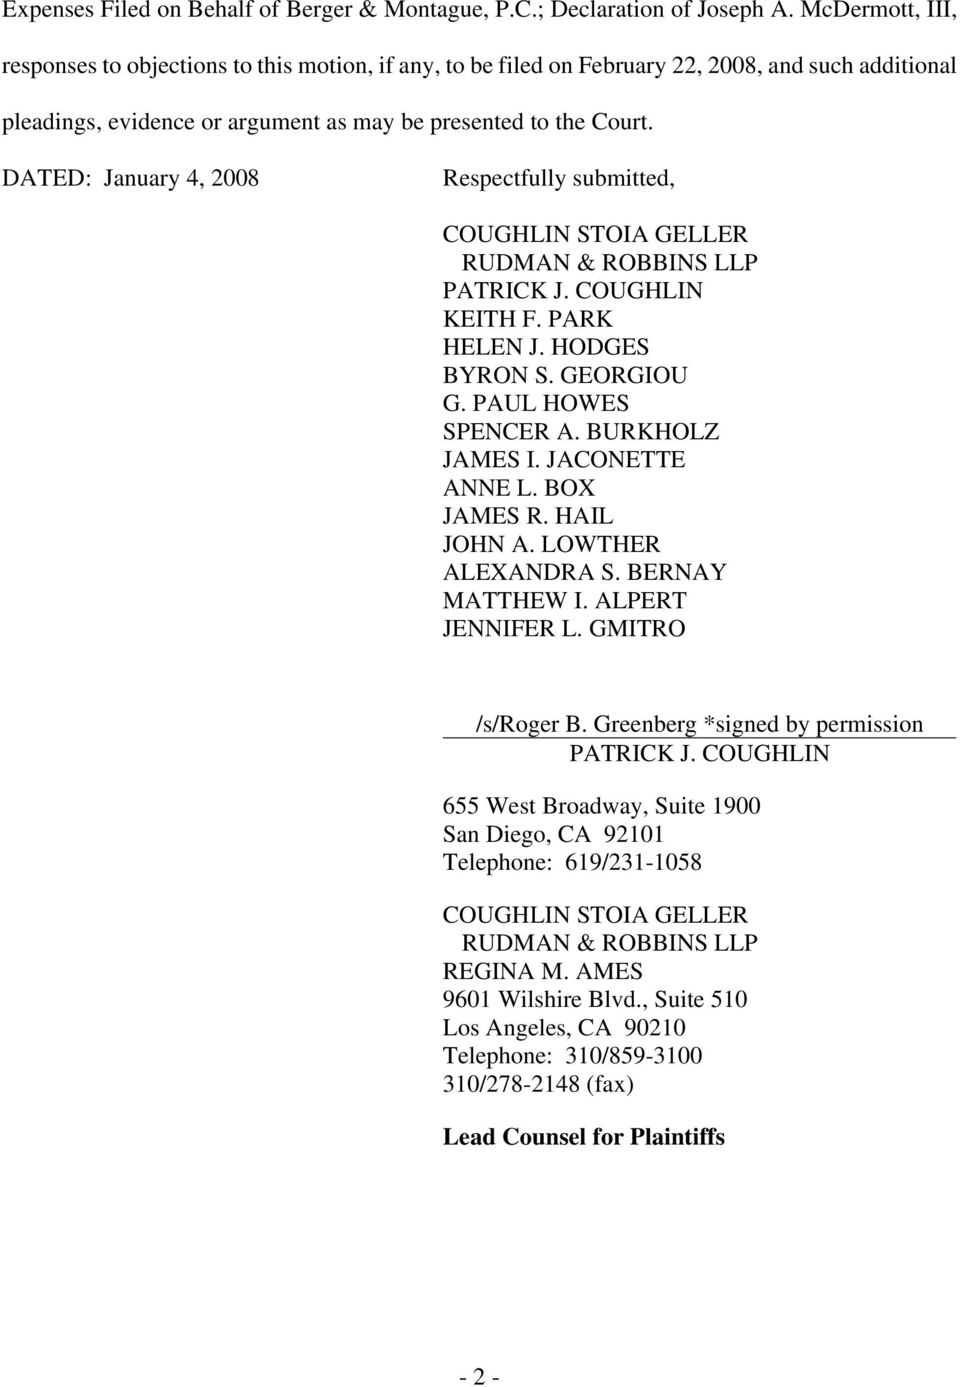 DATED: January 4, 2008 Respectfully submitted, COUGHLIN STOIA GELLER RUDMAN & ROBBINS LLP PATRICK J. COUGHLIN KEITH F. PARK HELEN J. HODGES BYRON S. GEORGIOU G. PAUL HOWES SPENCER A. BURKHOLZ JAMES I.